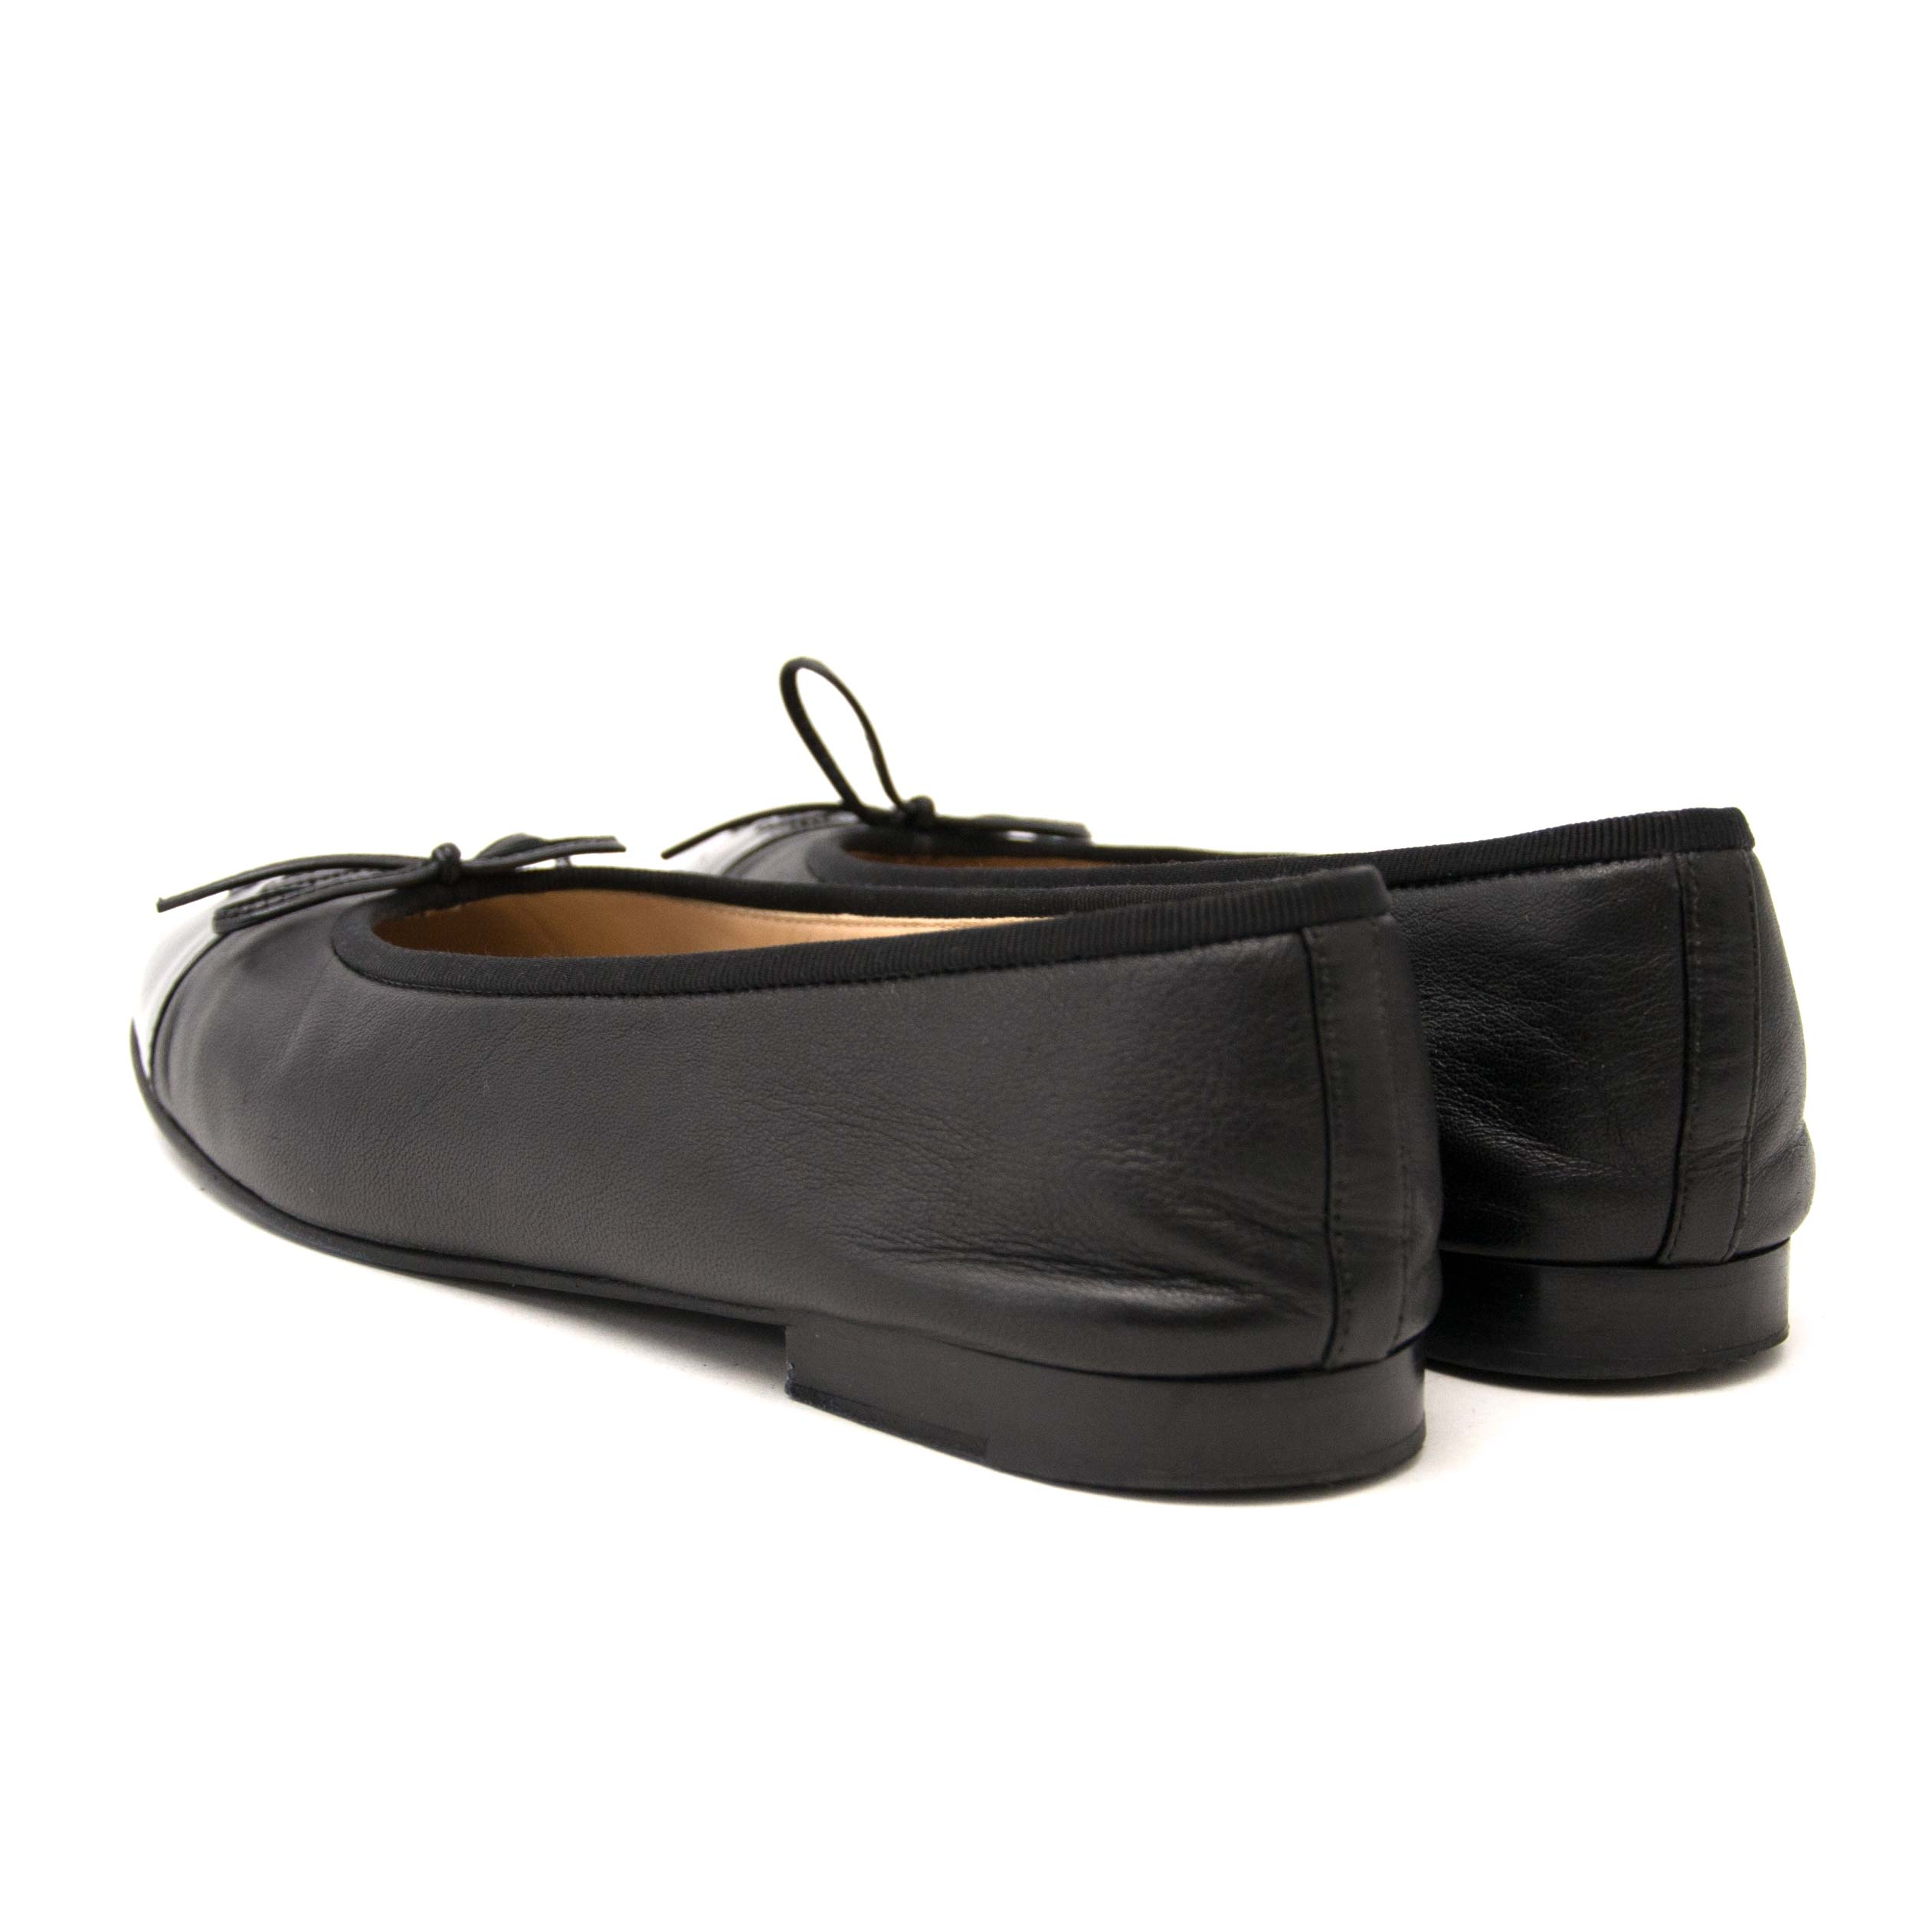 looking for black patent chanel flats size 39,5? shop them now at labellov.com for the best price